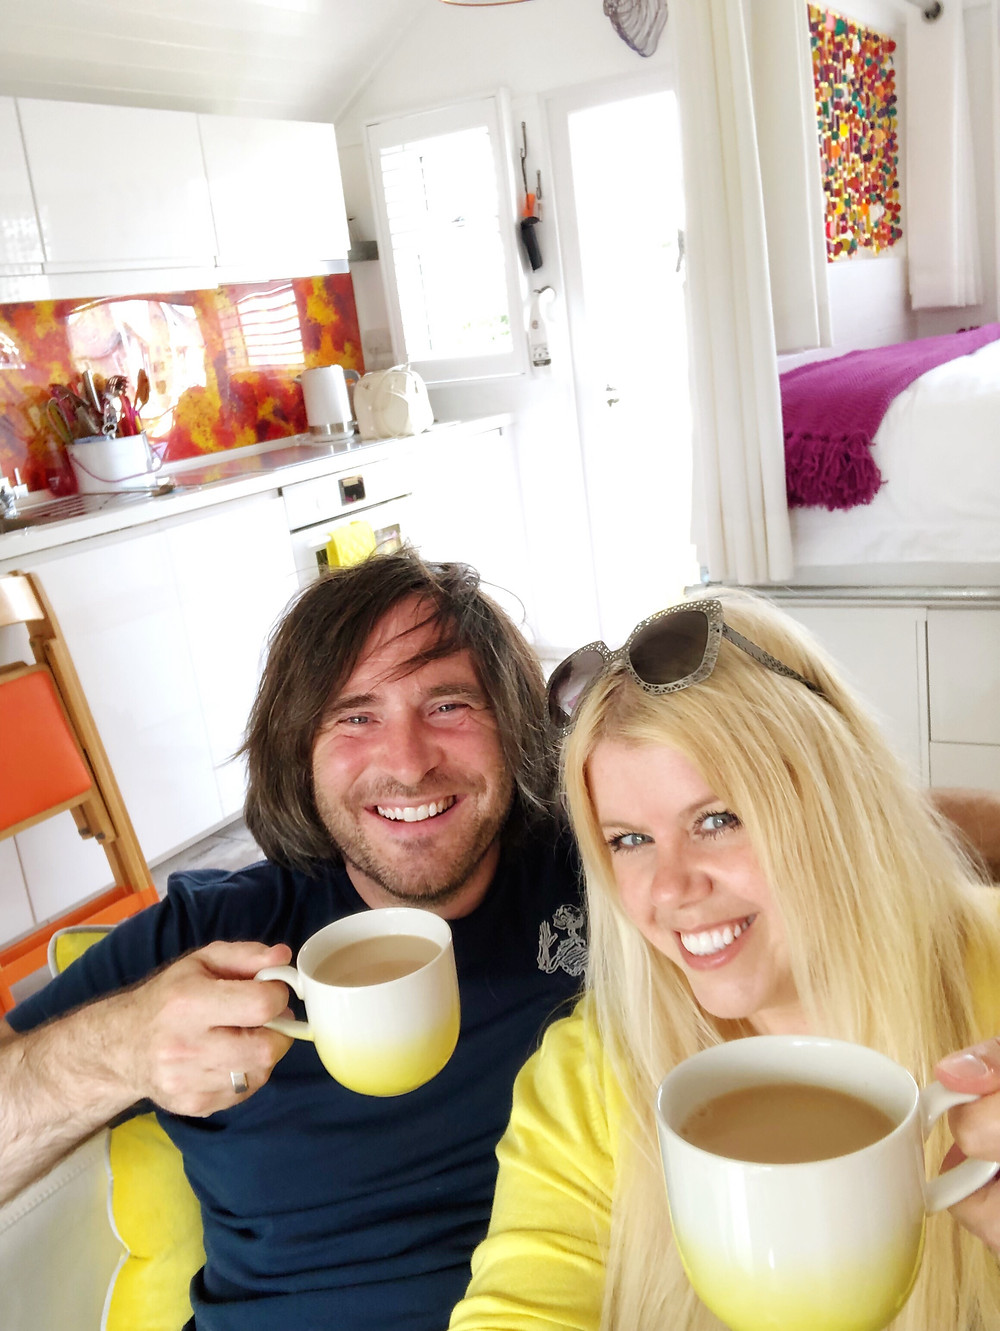 Somerset cool, Holi Moli at Dunster beach, Somerset bloggers, cool stays in Somerset